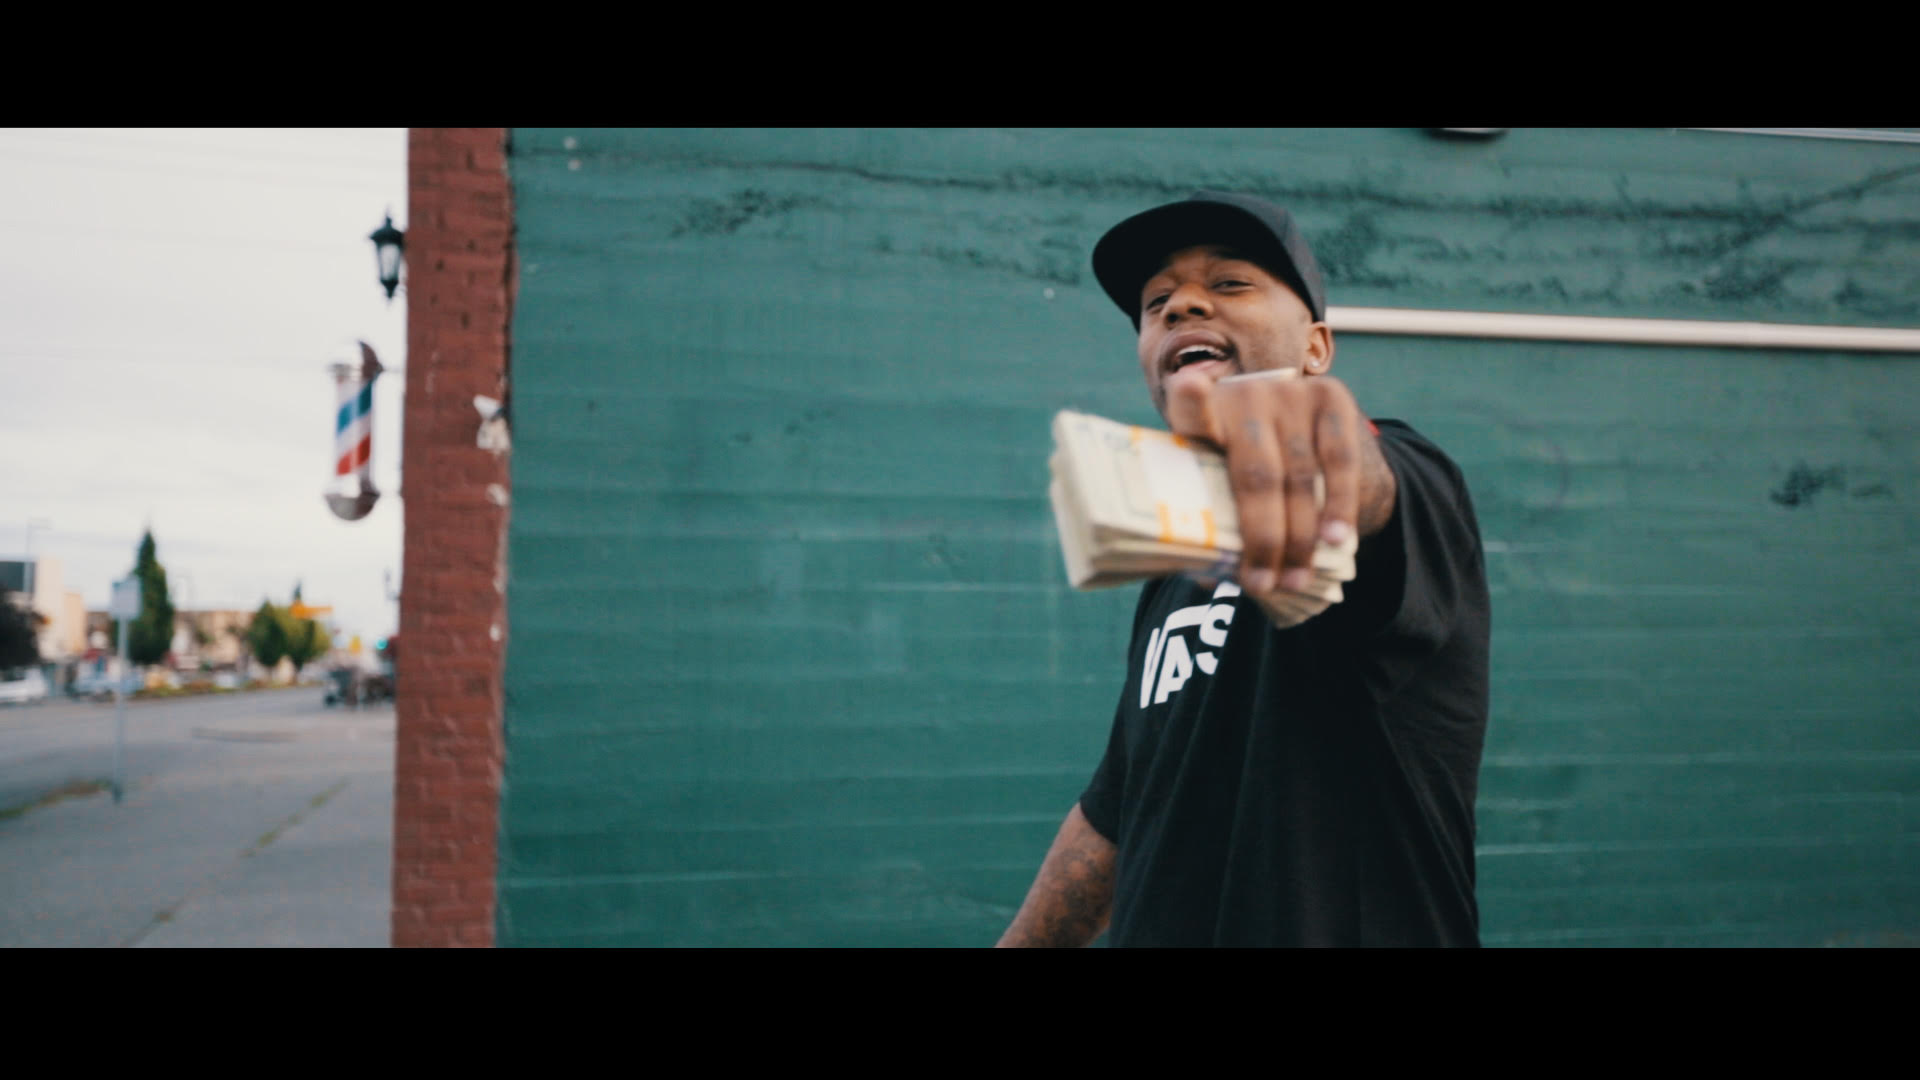 New Video: Tasman Holloway – Self Made | @TasmanHolloway